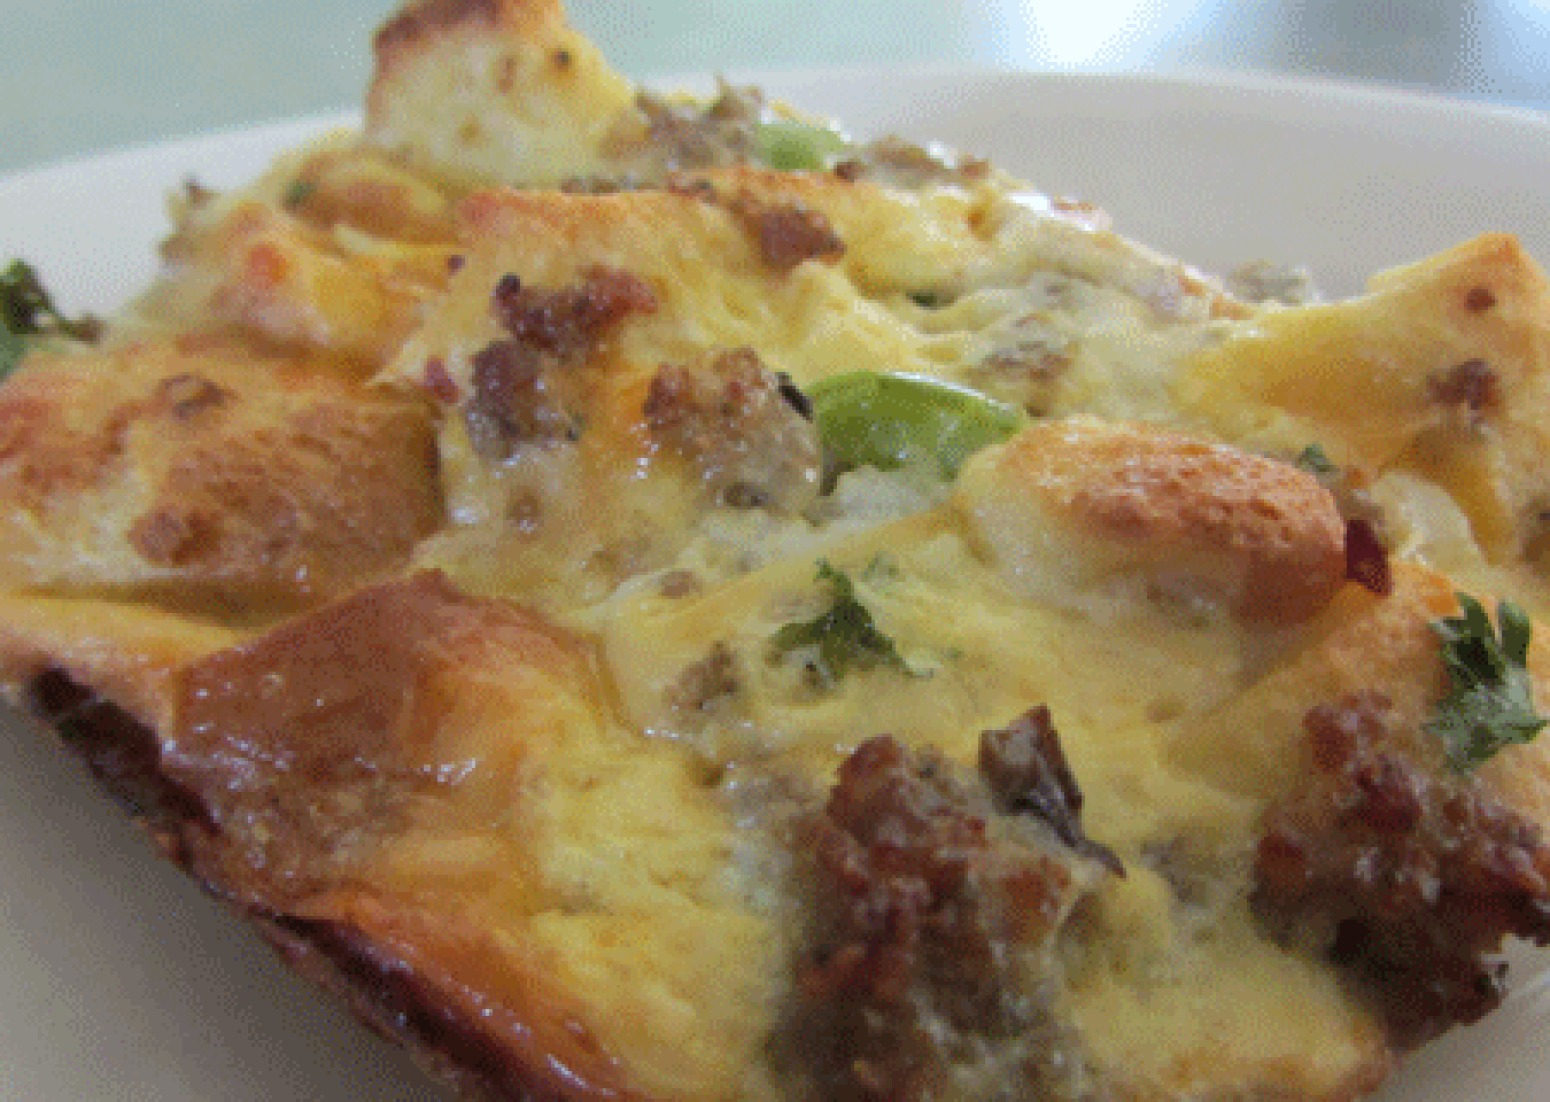 Southwestern Sausage & Egg Breakfast Casserole Recipe | Just A Pinch ...